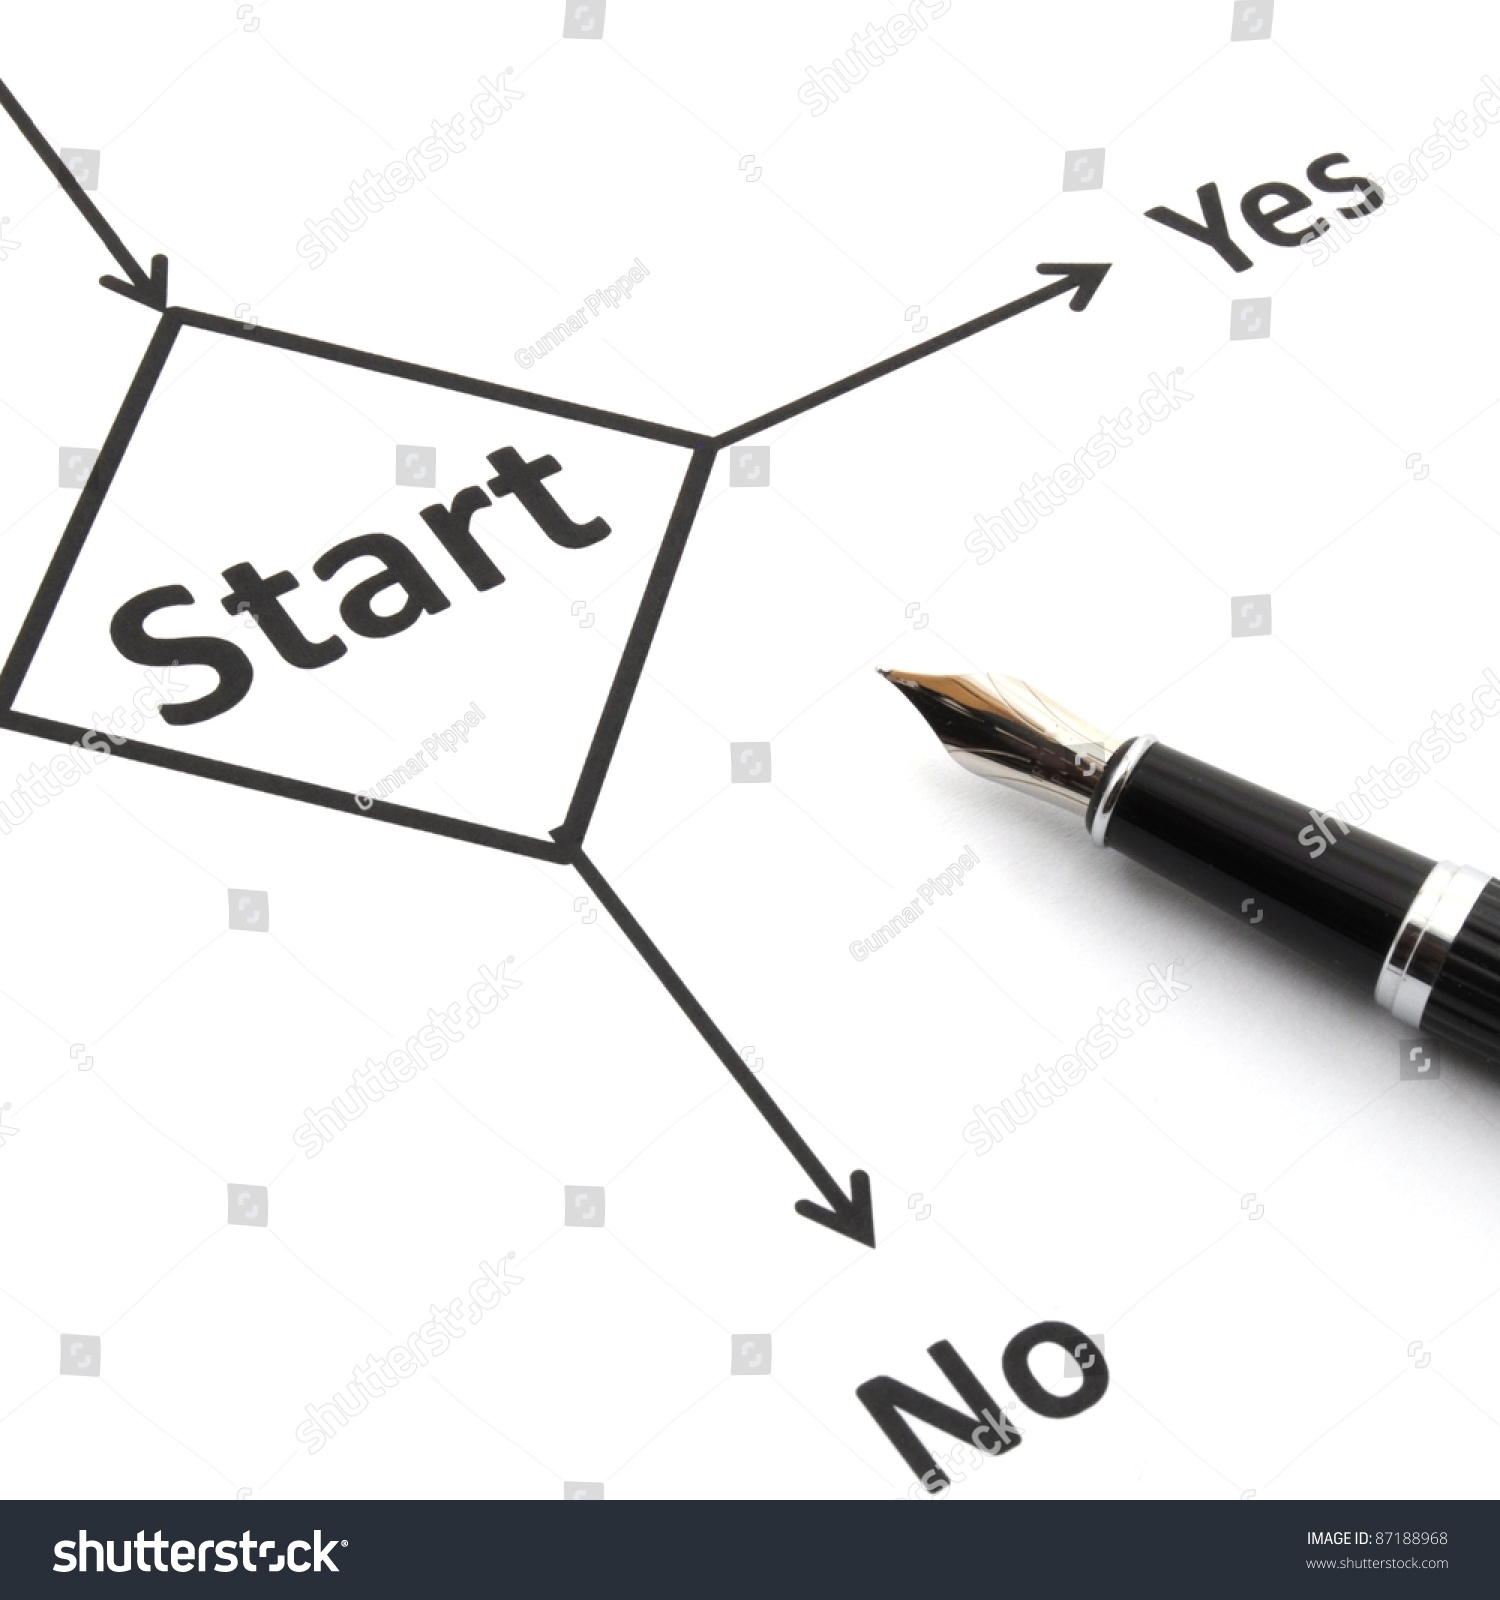 Start go concept word flow chart stock photo 87188968 shutterstock start or go concept with word in flow chart and pen nvjuhfo Image collections